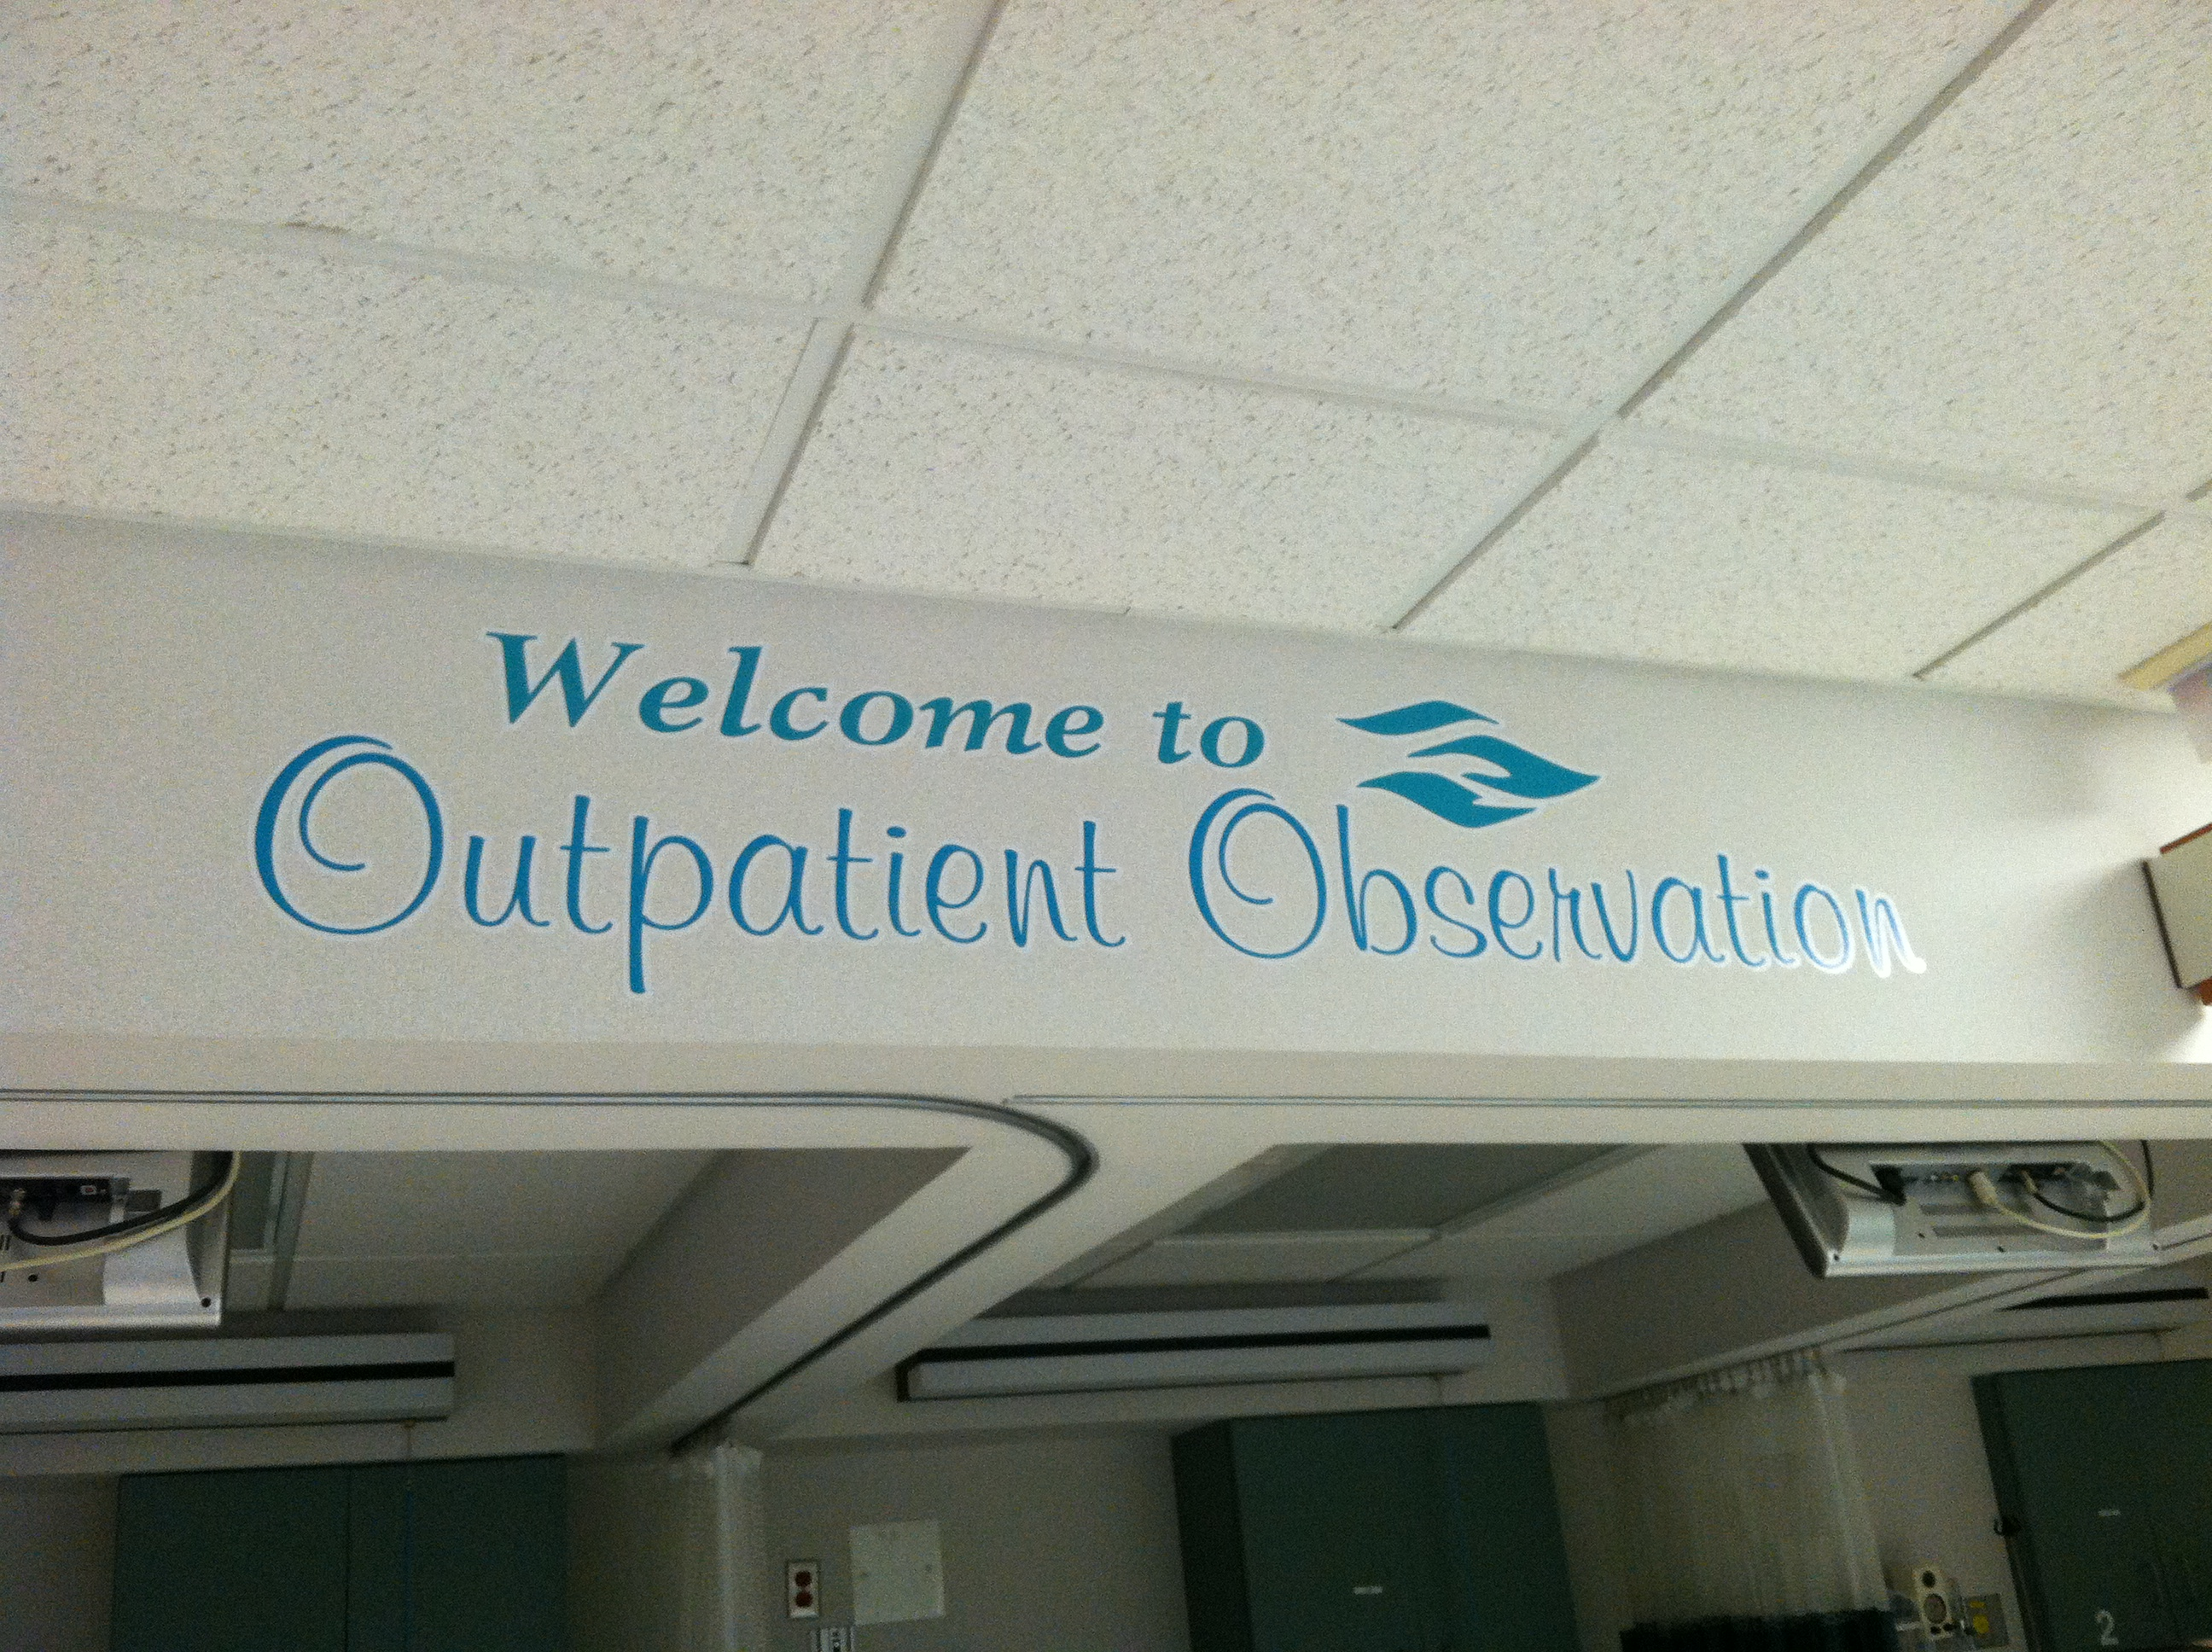 Observation Unit Signage at Riverside Medical Center, Kankakee, IL